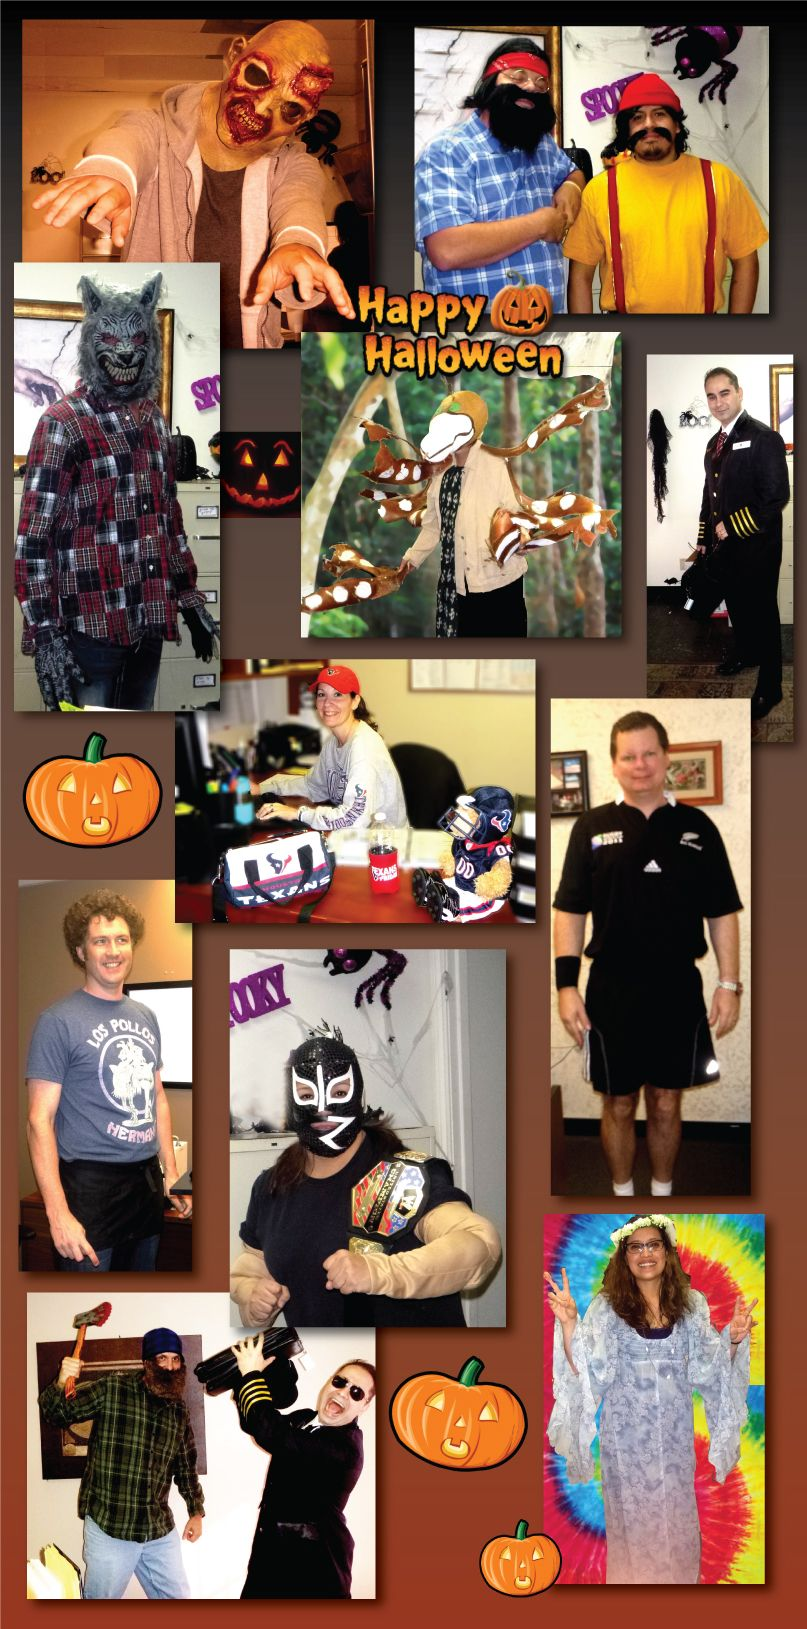 Our Halloween 2014 costume contest was lots of fun!